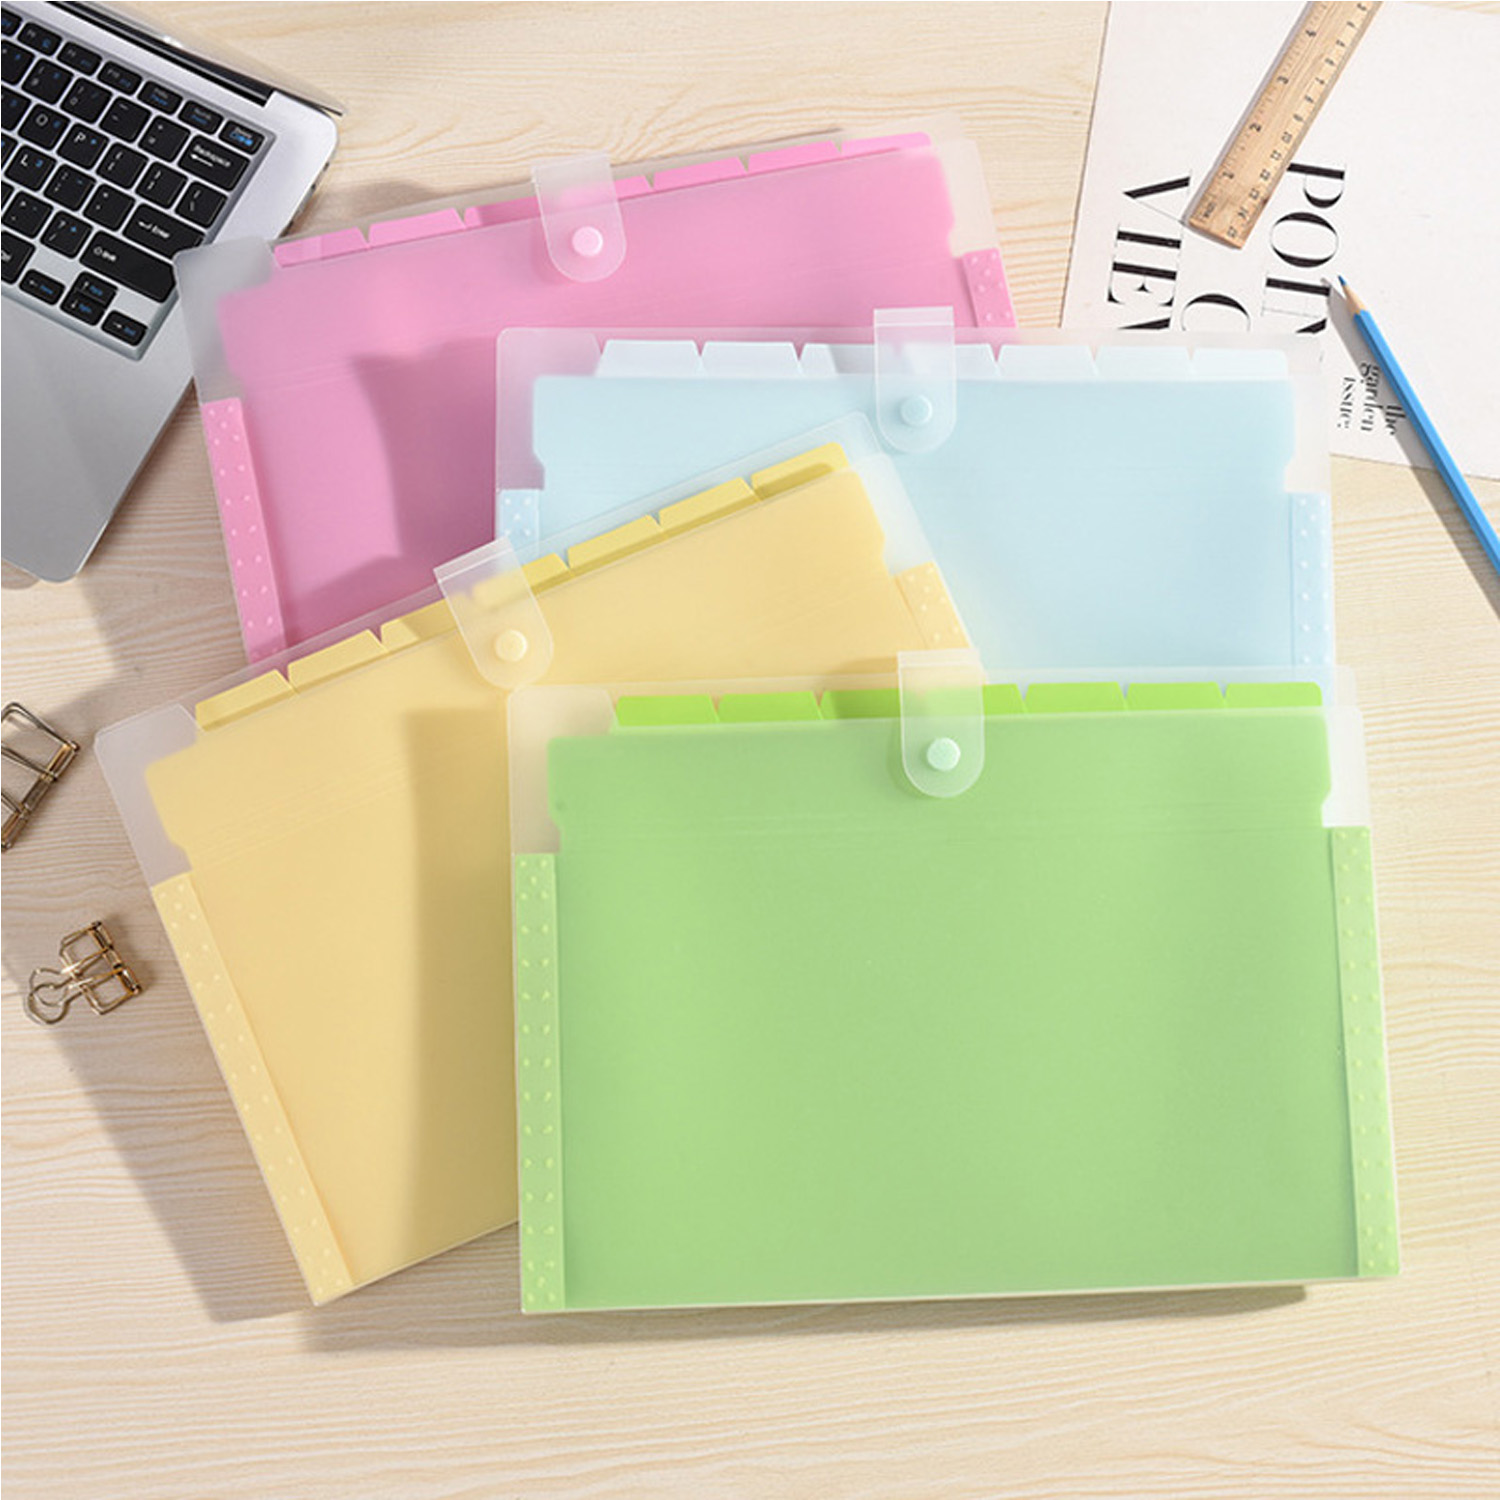 Wholesale Solid A4 Size Plastic Expanding Wallet File Folders Document Bag Organizer With Button School Office Stationery Parts